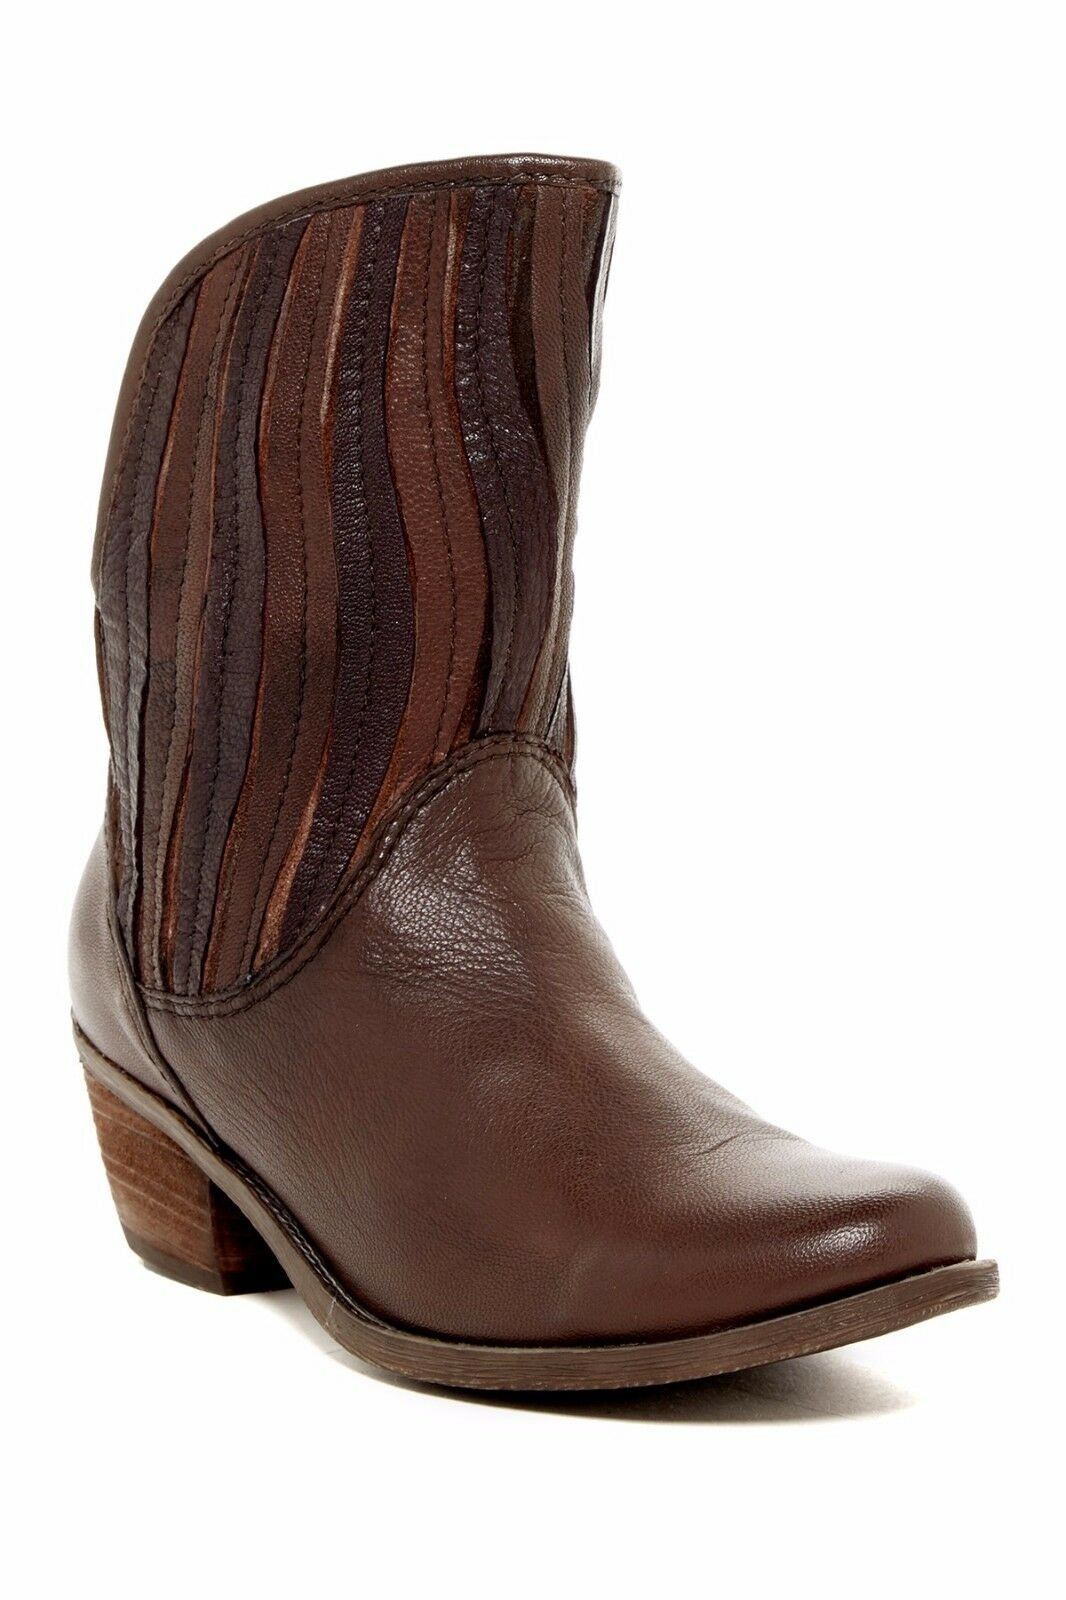 New Sheridan Mia SWAY Stiefel Stiefel Stiefel Sz 37 Striped Art Shaft Leather braun Combo  245 NIB 7bf452